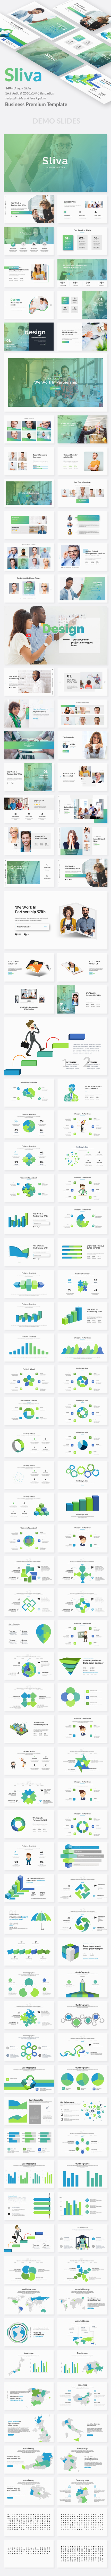 Sliva Business Keynote Template - Business Keynote Templates